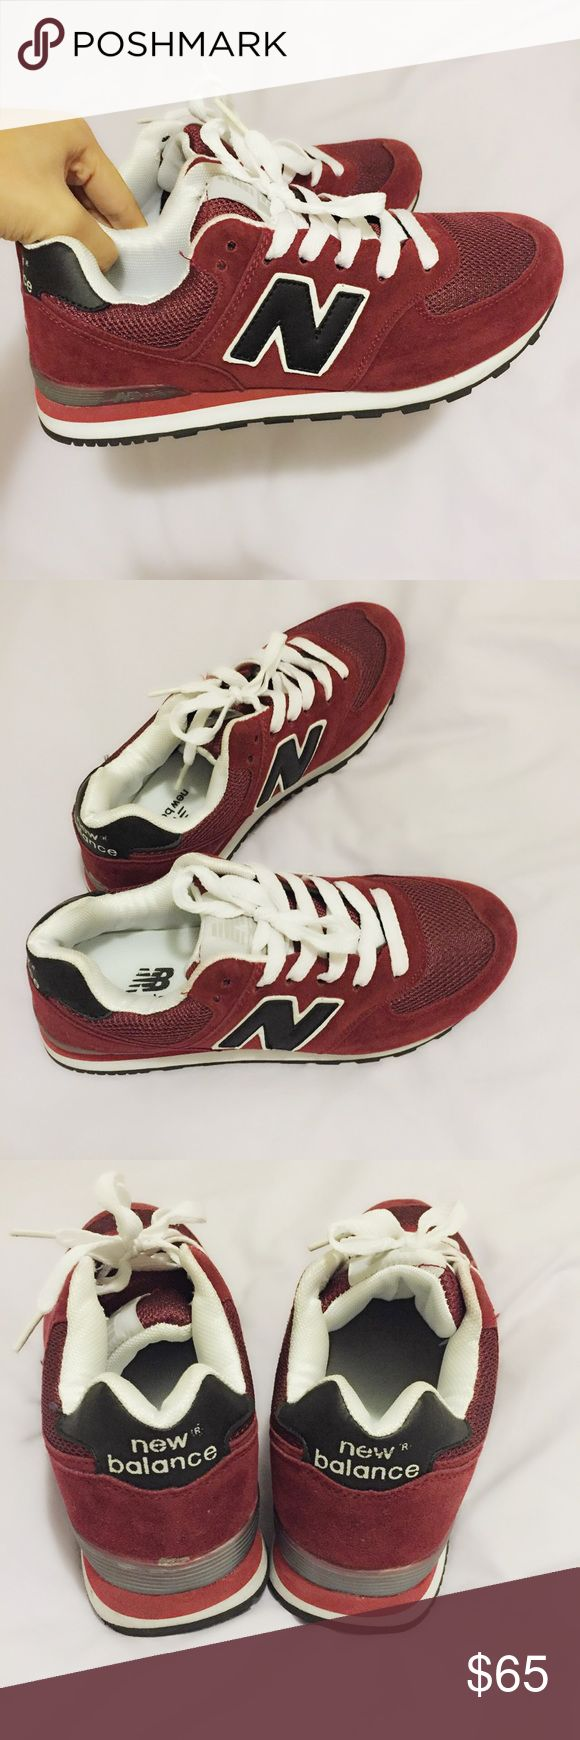 new balance brand shoes